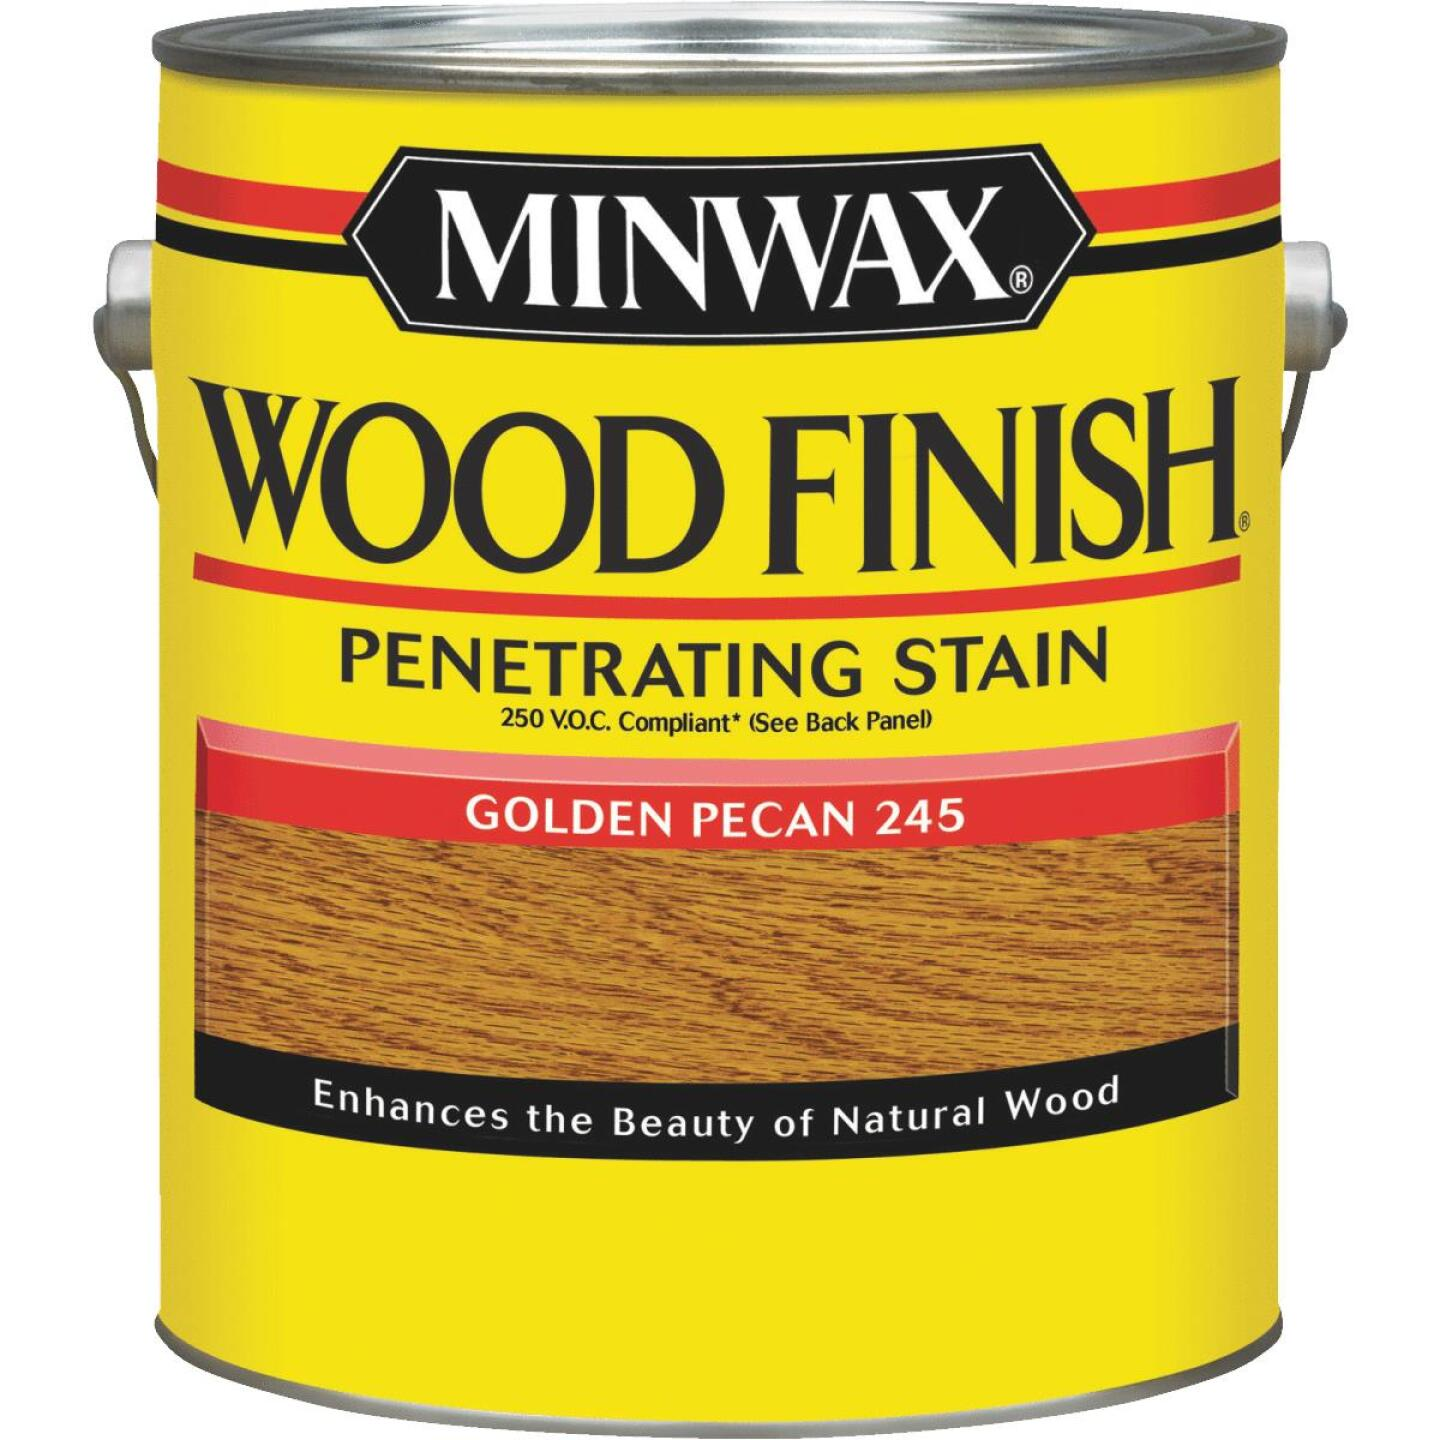 Minwax Wood Finish VOC Penetrating Stain, Golden Pecan, 1 Gal. Image 1